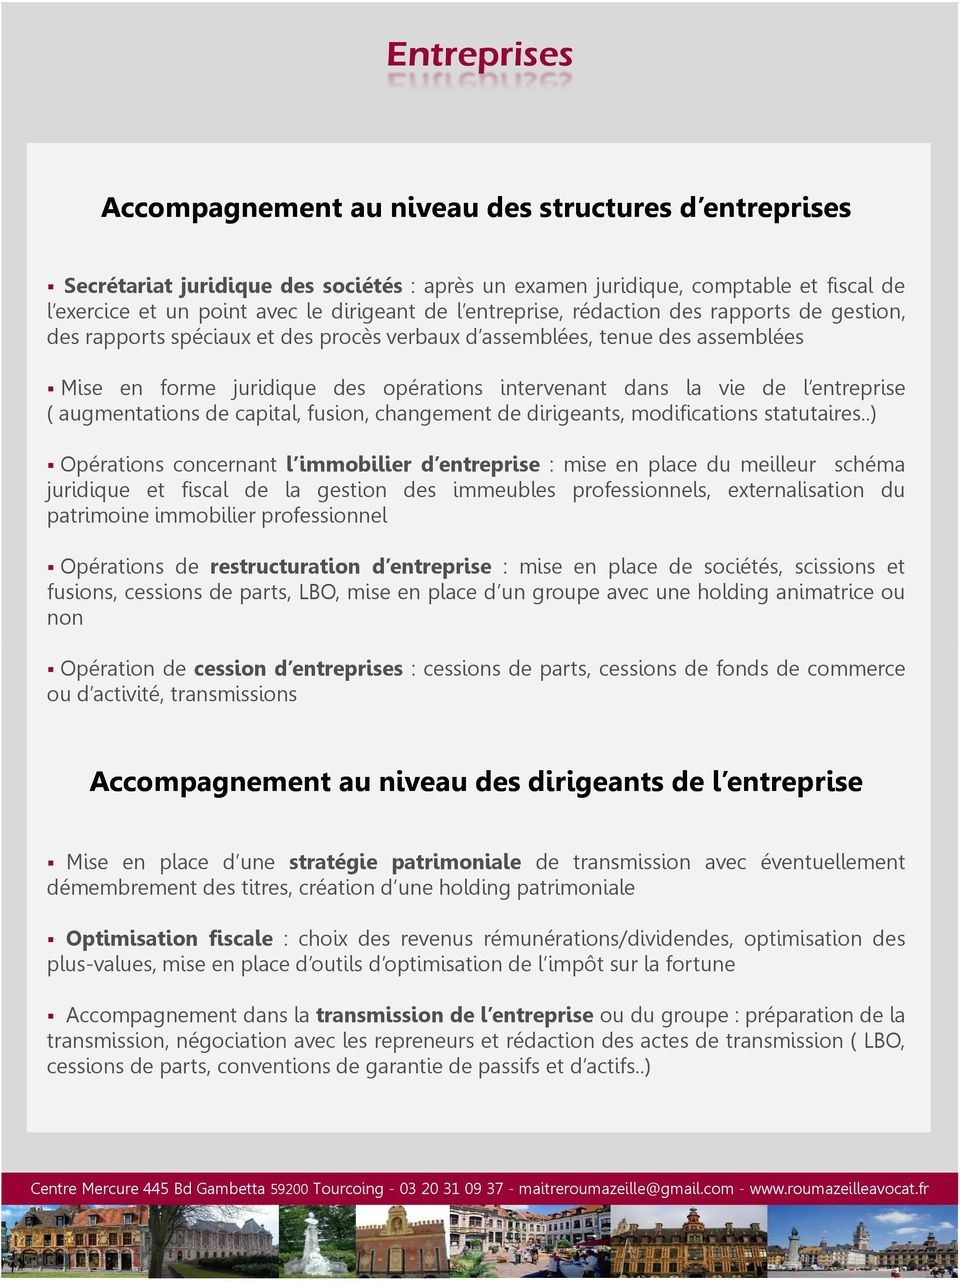 entreprise ( augmentations de capital, fusion, changement de dirigeants, modifications statutaires.